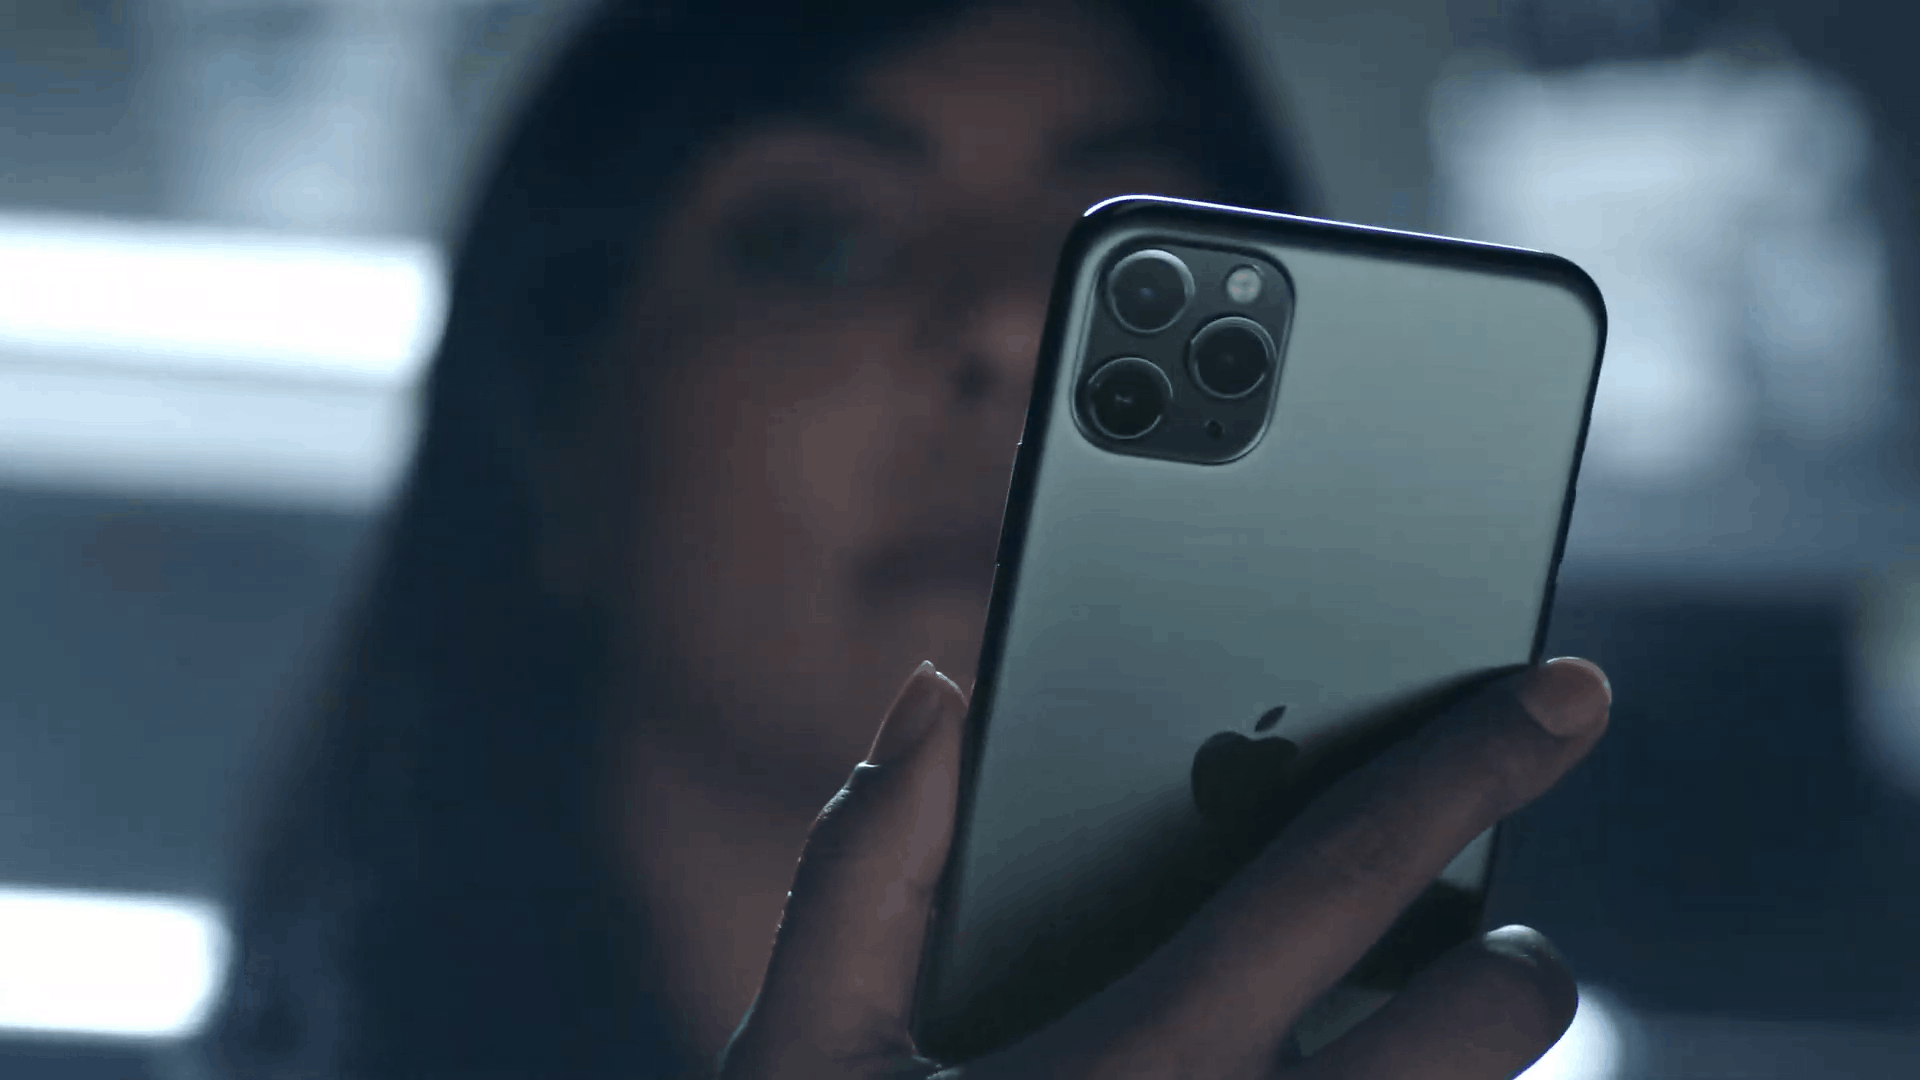 Here's why you should wait for the iPhone 12 Pro